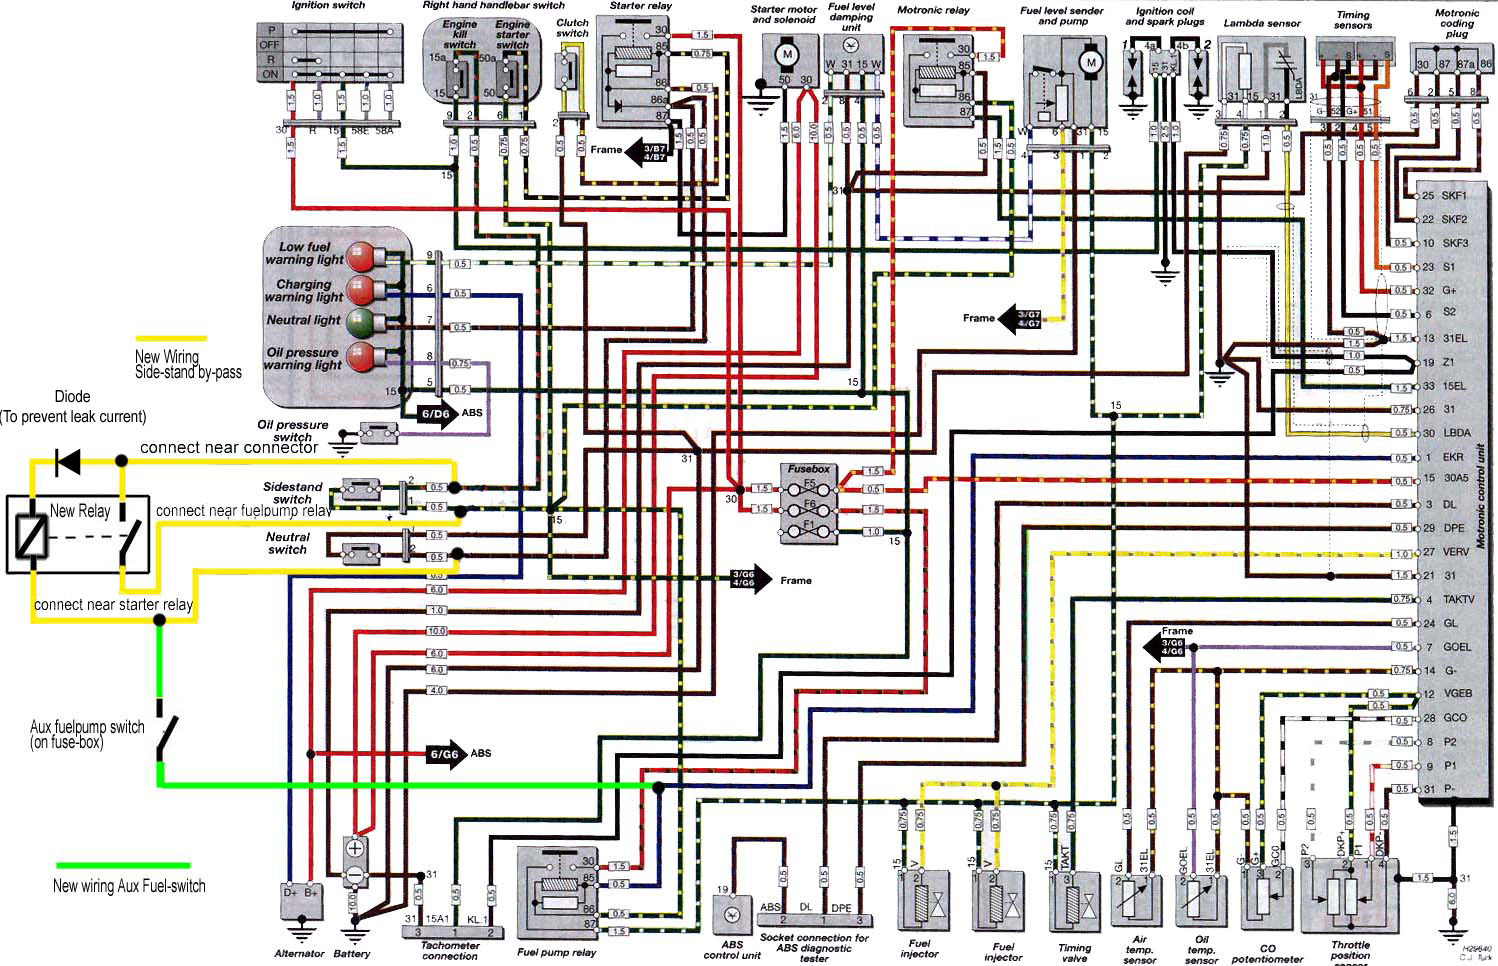 Cool Wiring Diagram Bmw K1200 Diagram Data Schema Wiring Digital Resources Minagakbiperorg